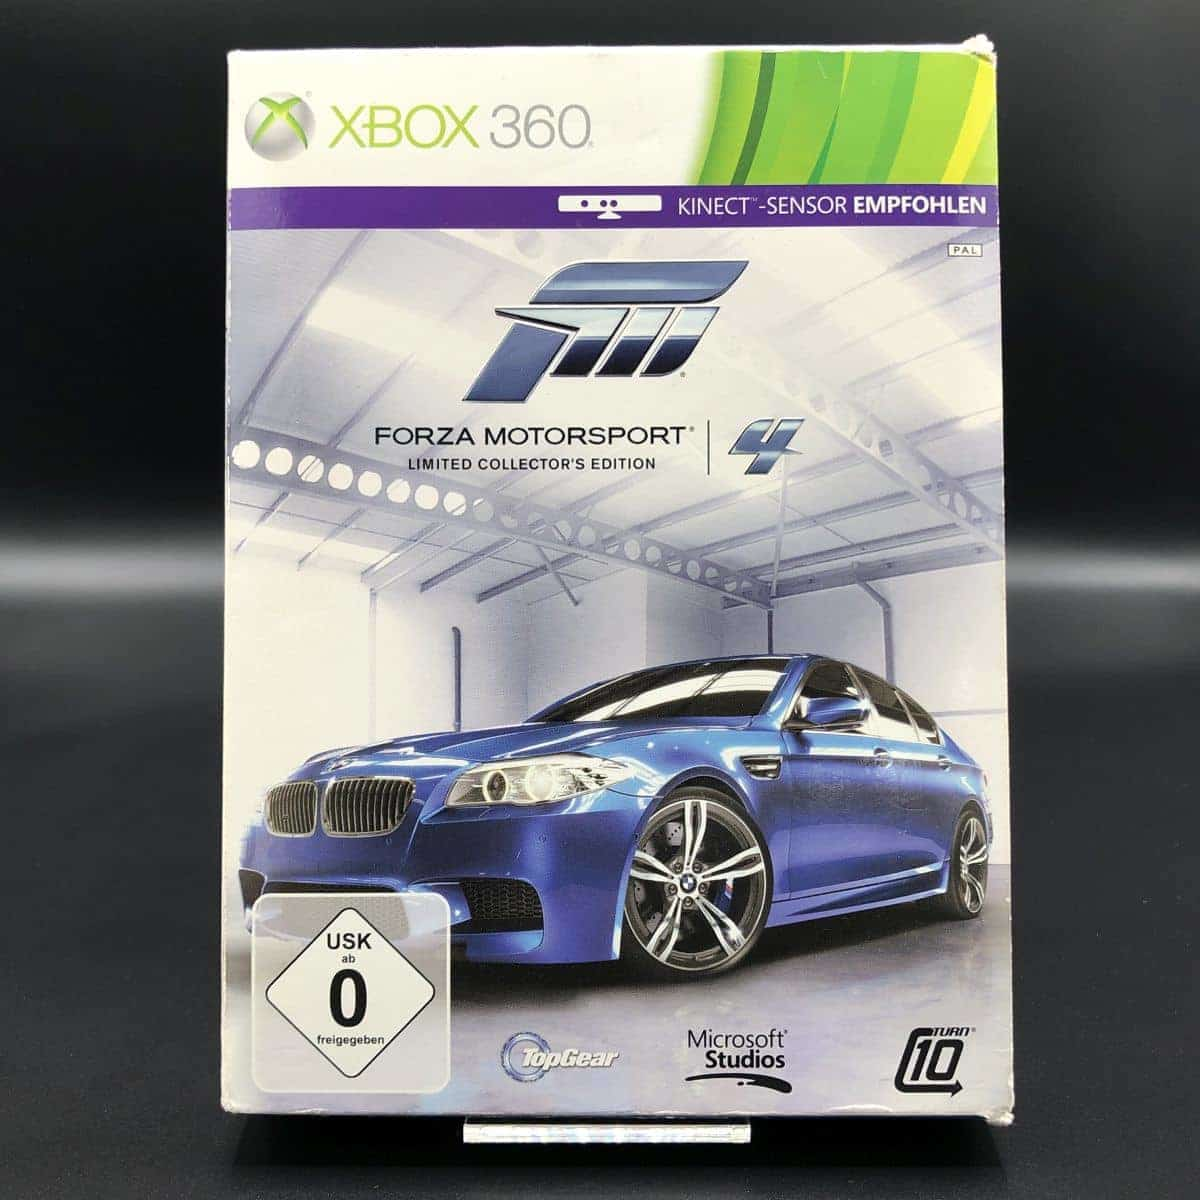 Forza Motorsport 4 (Limited Collector's Edition) (Komplett) (Gut) XBOX 360